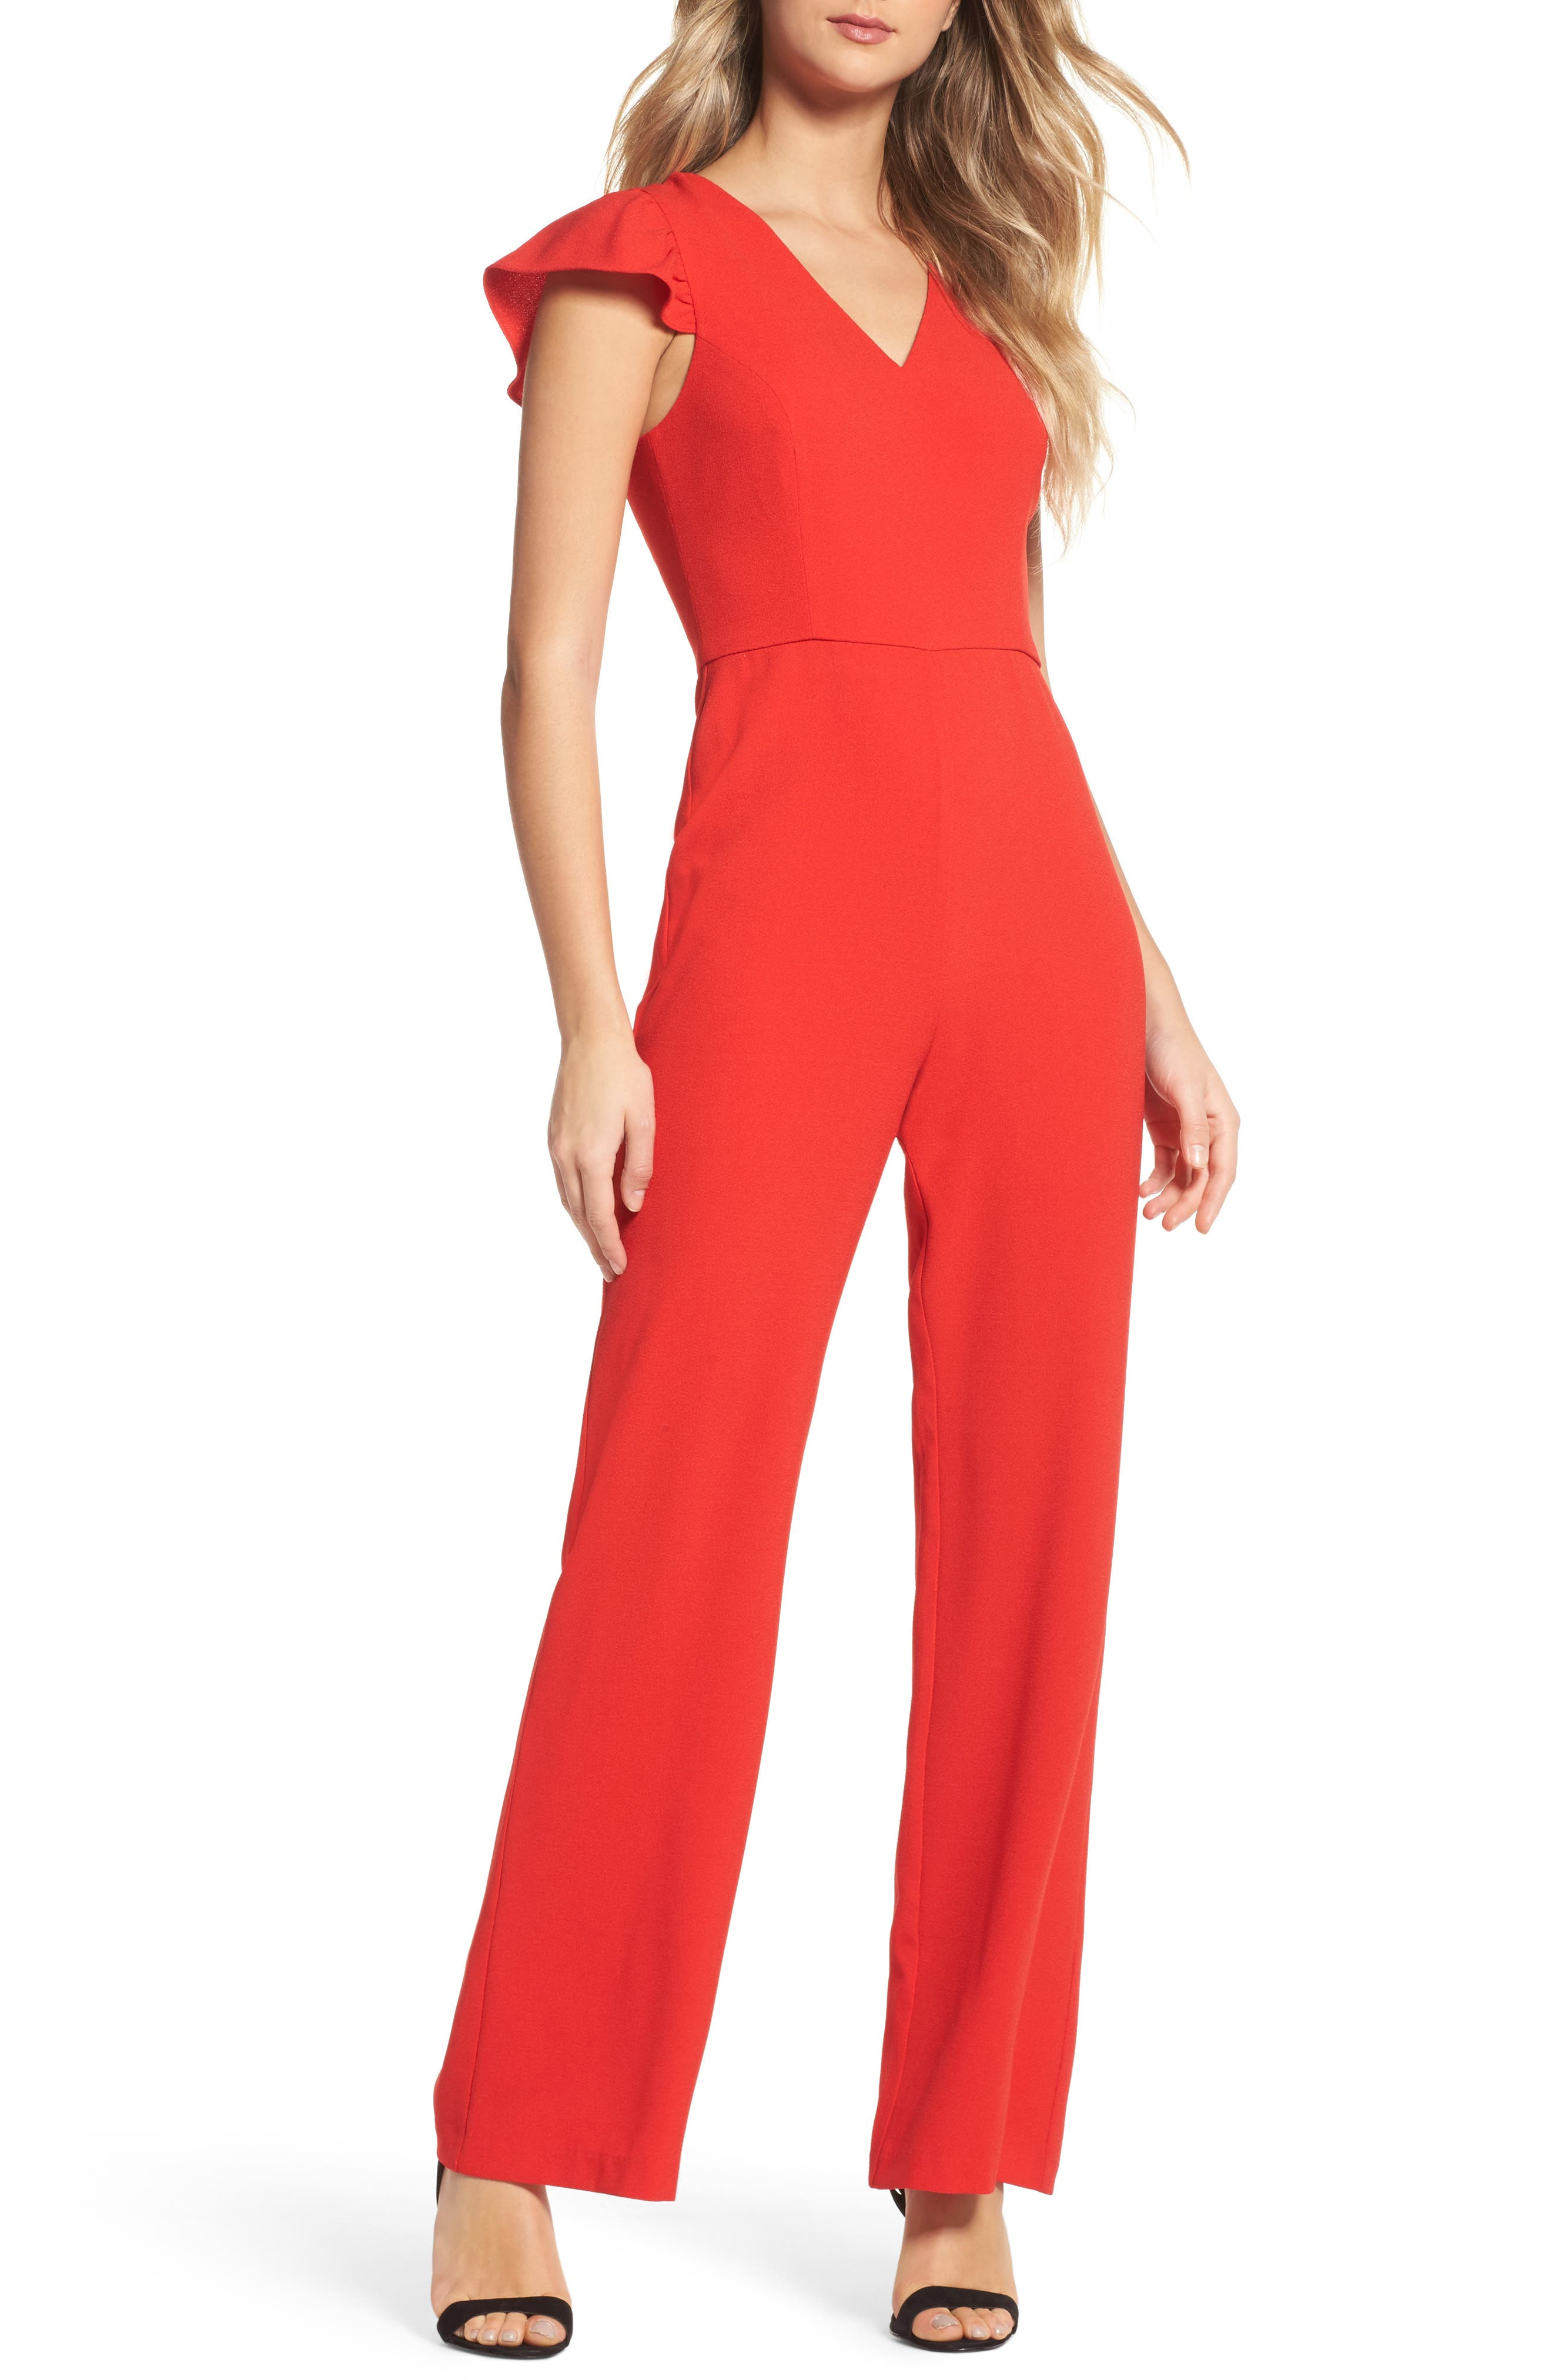 Ruffle Sleeve Jumpsuit,                             Main thumbnail 1, color,                             620